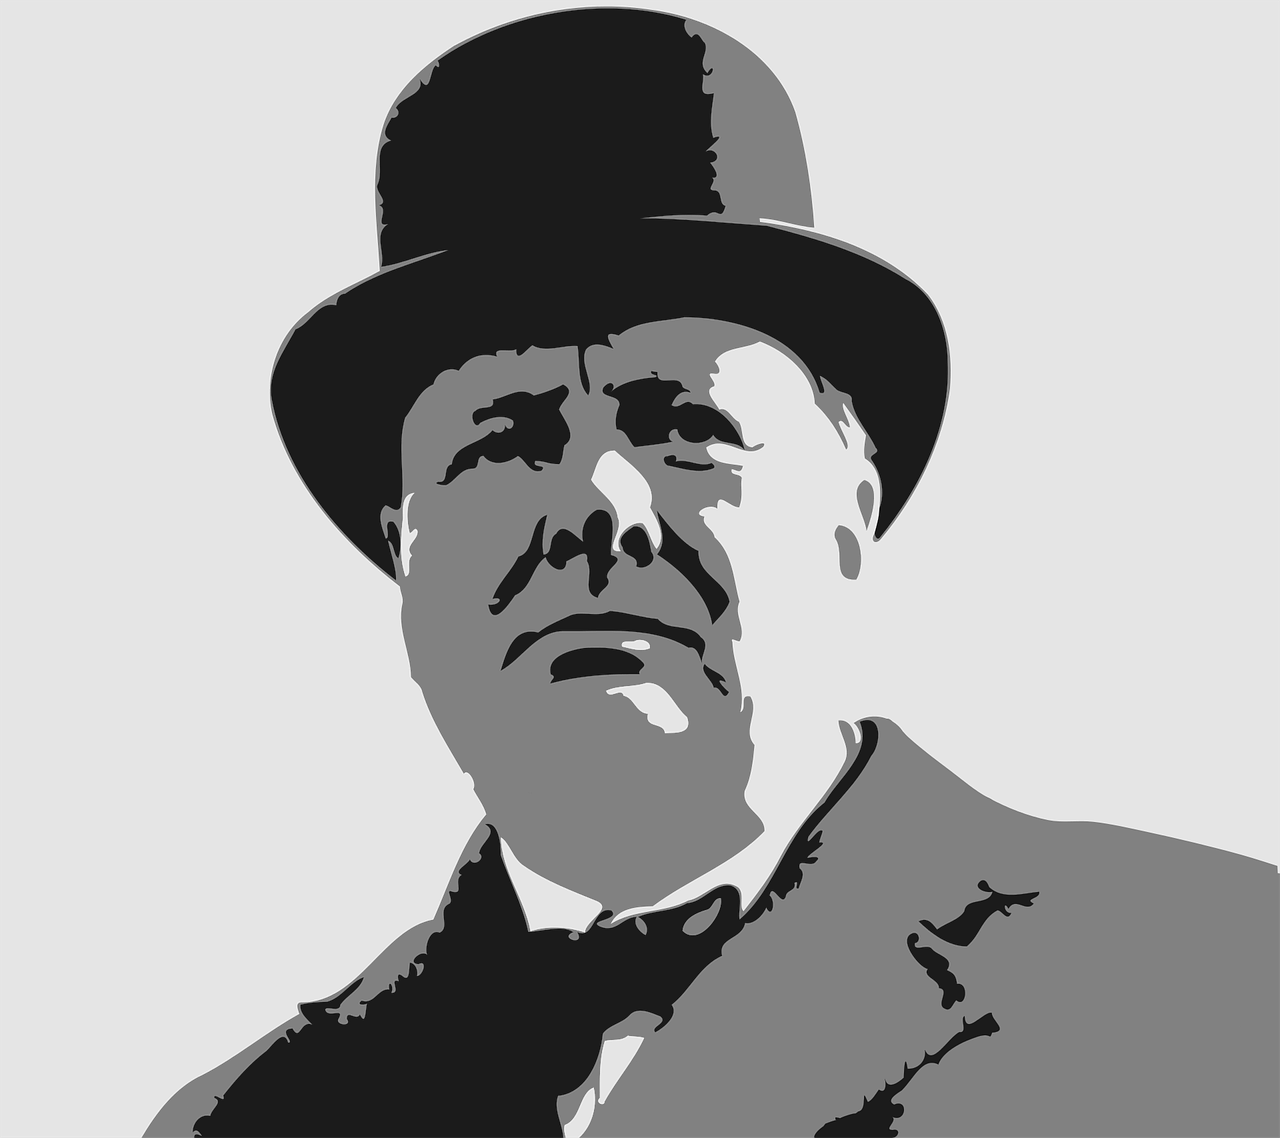 close shot of prime minister Winston Churchill for blog post about movies Darkest hour and 12 strong